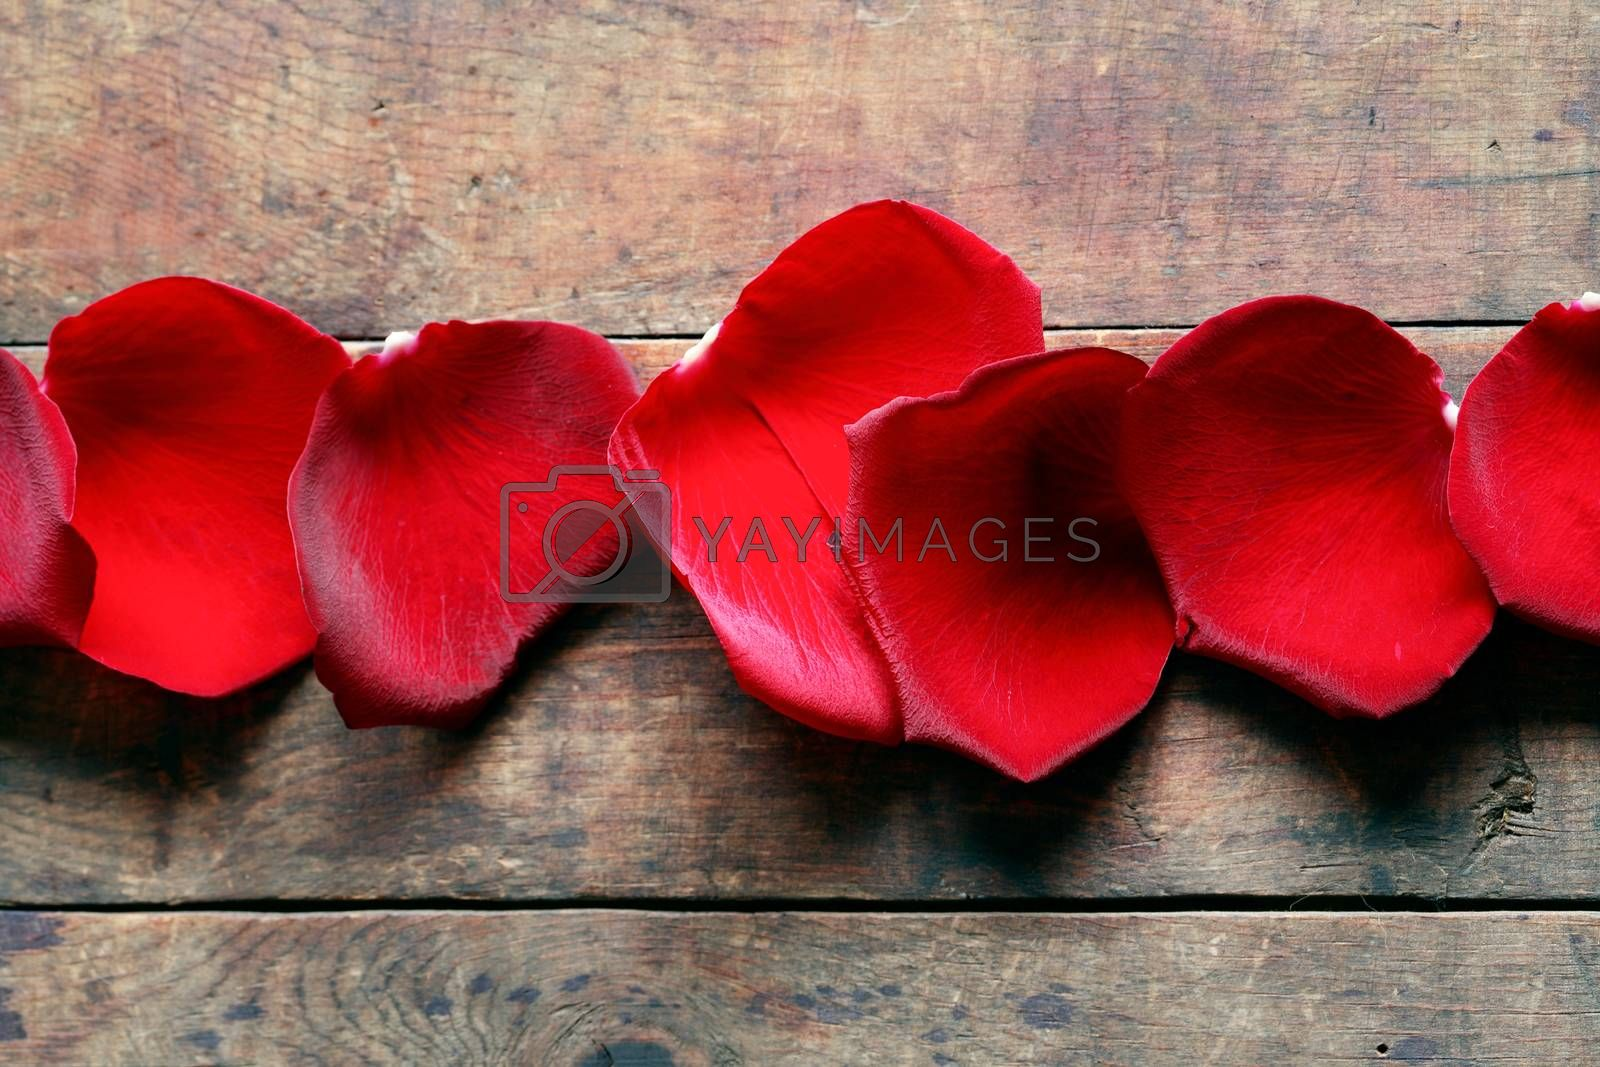 Romance concept. Few red rose petals in a row on wooden background